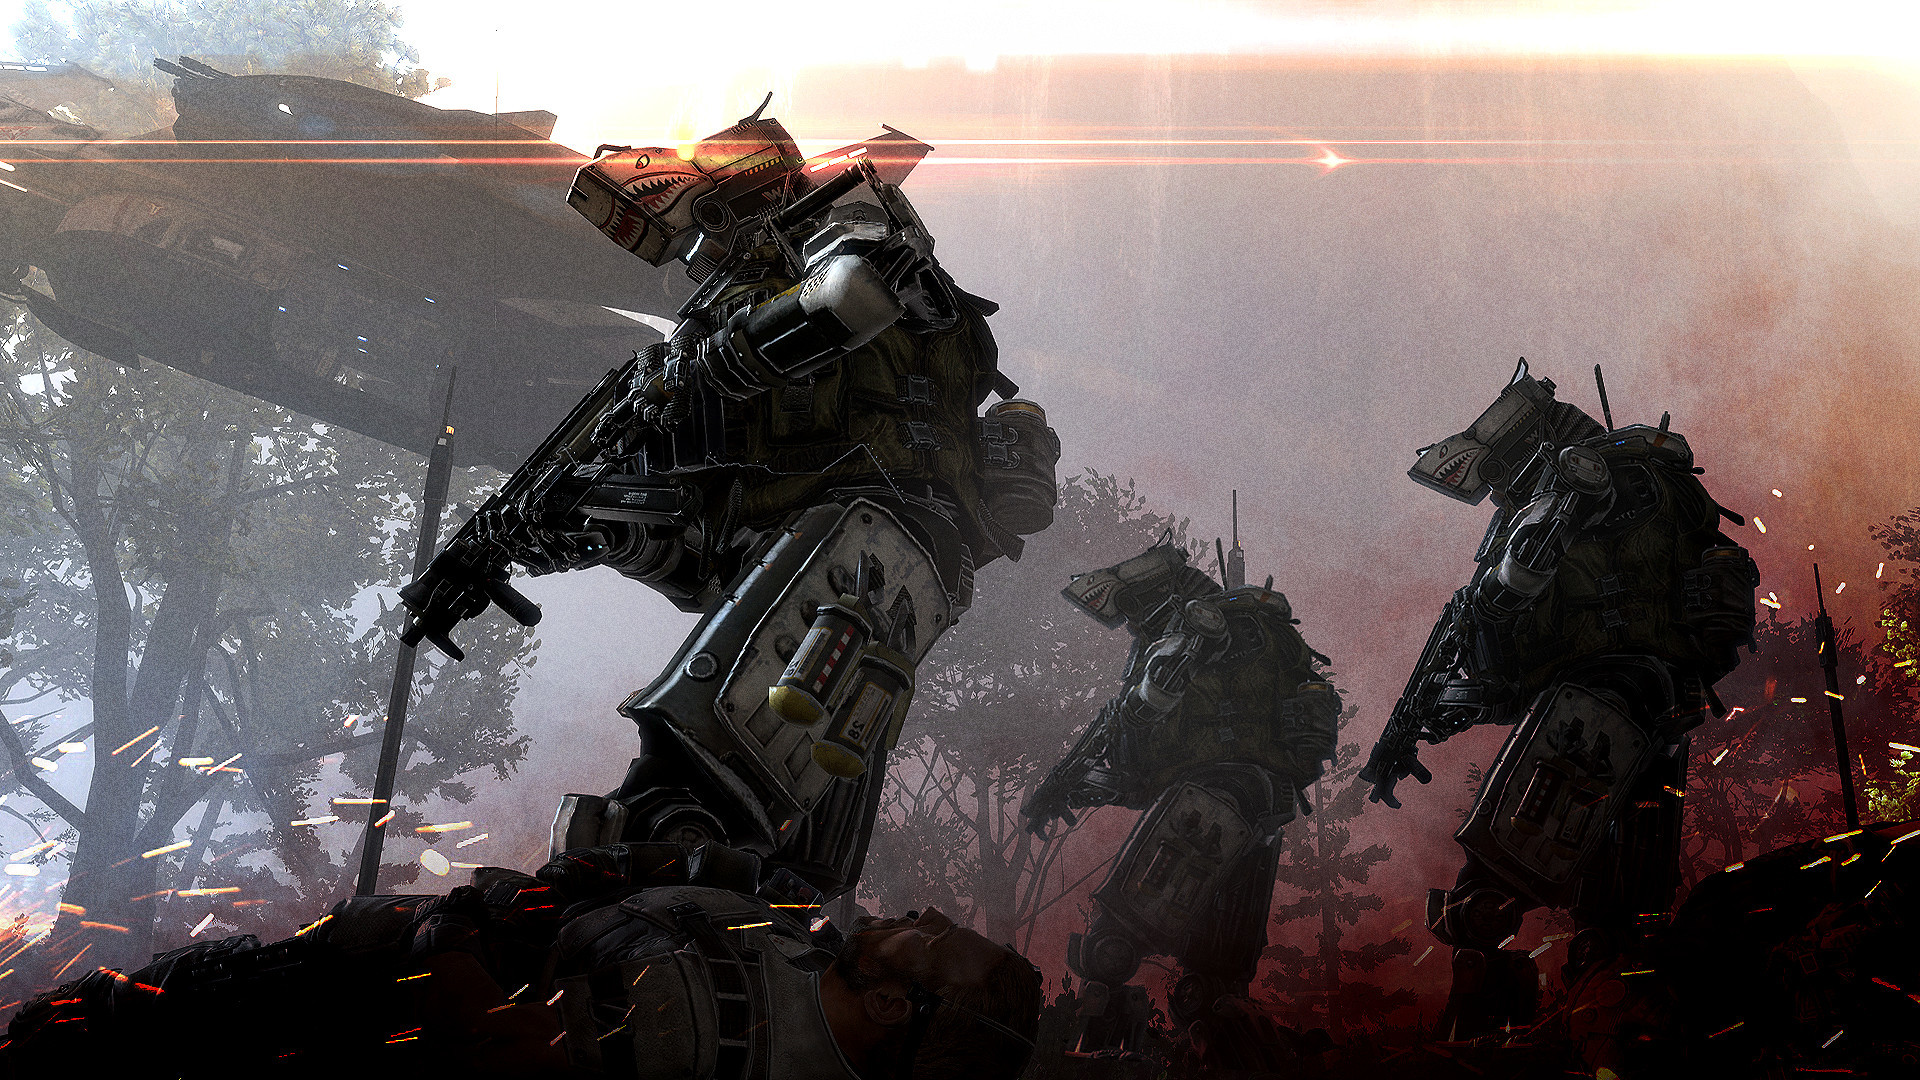 Viking Warriors Wallpaper · A concept by Brad Allen, showing a squad of IMC  Spectres on patrol. Good